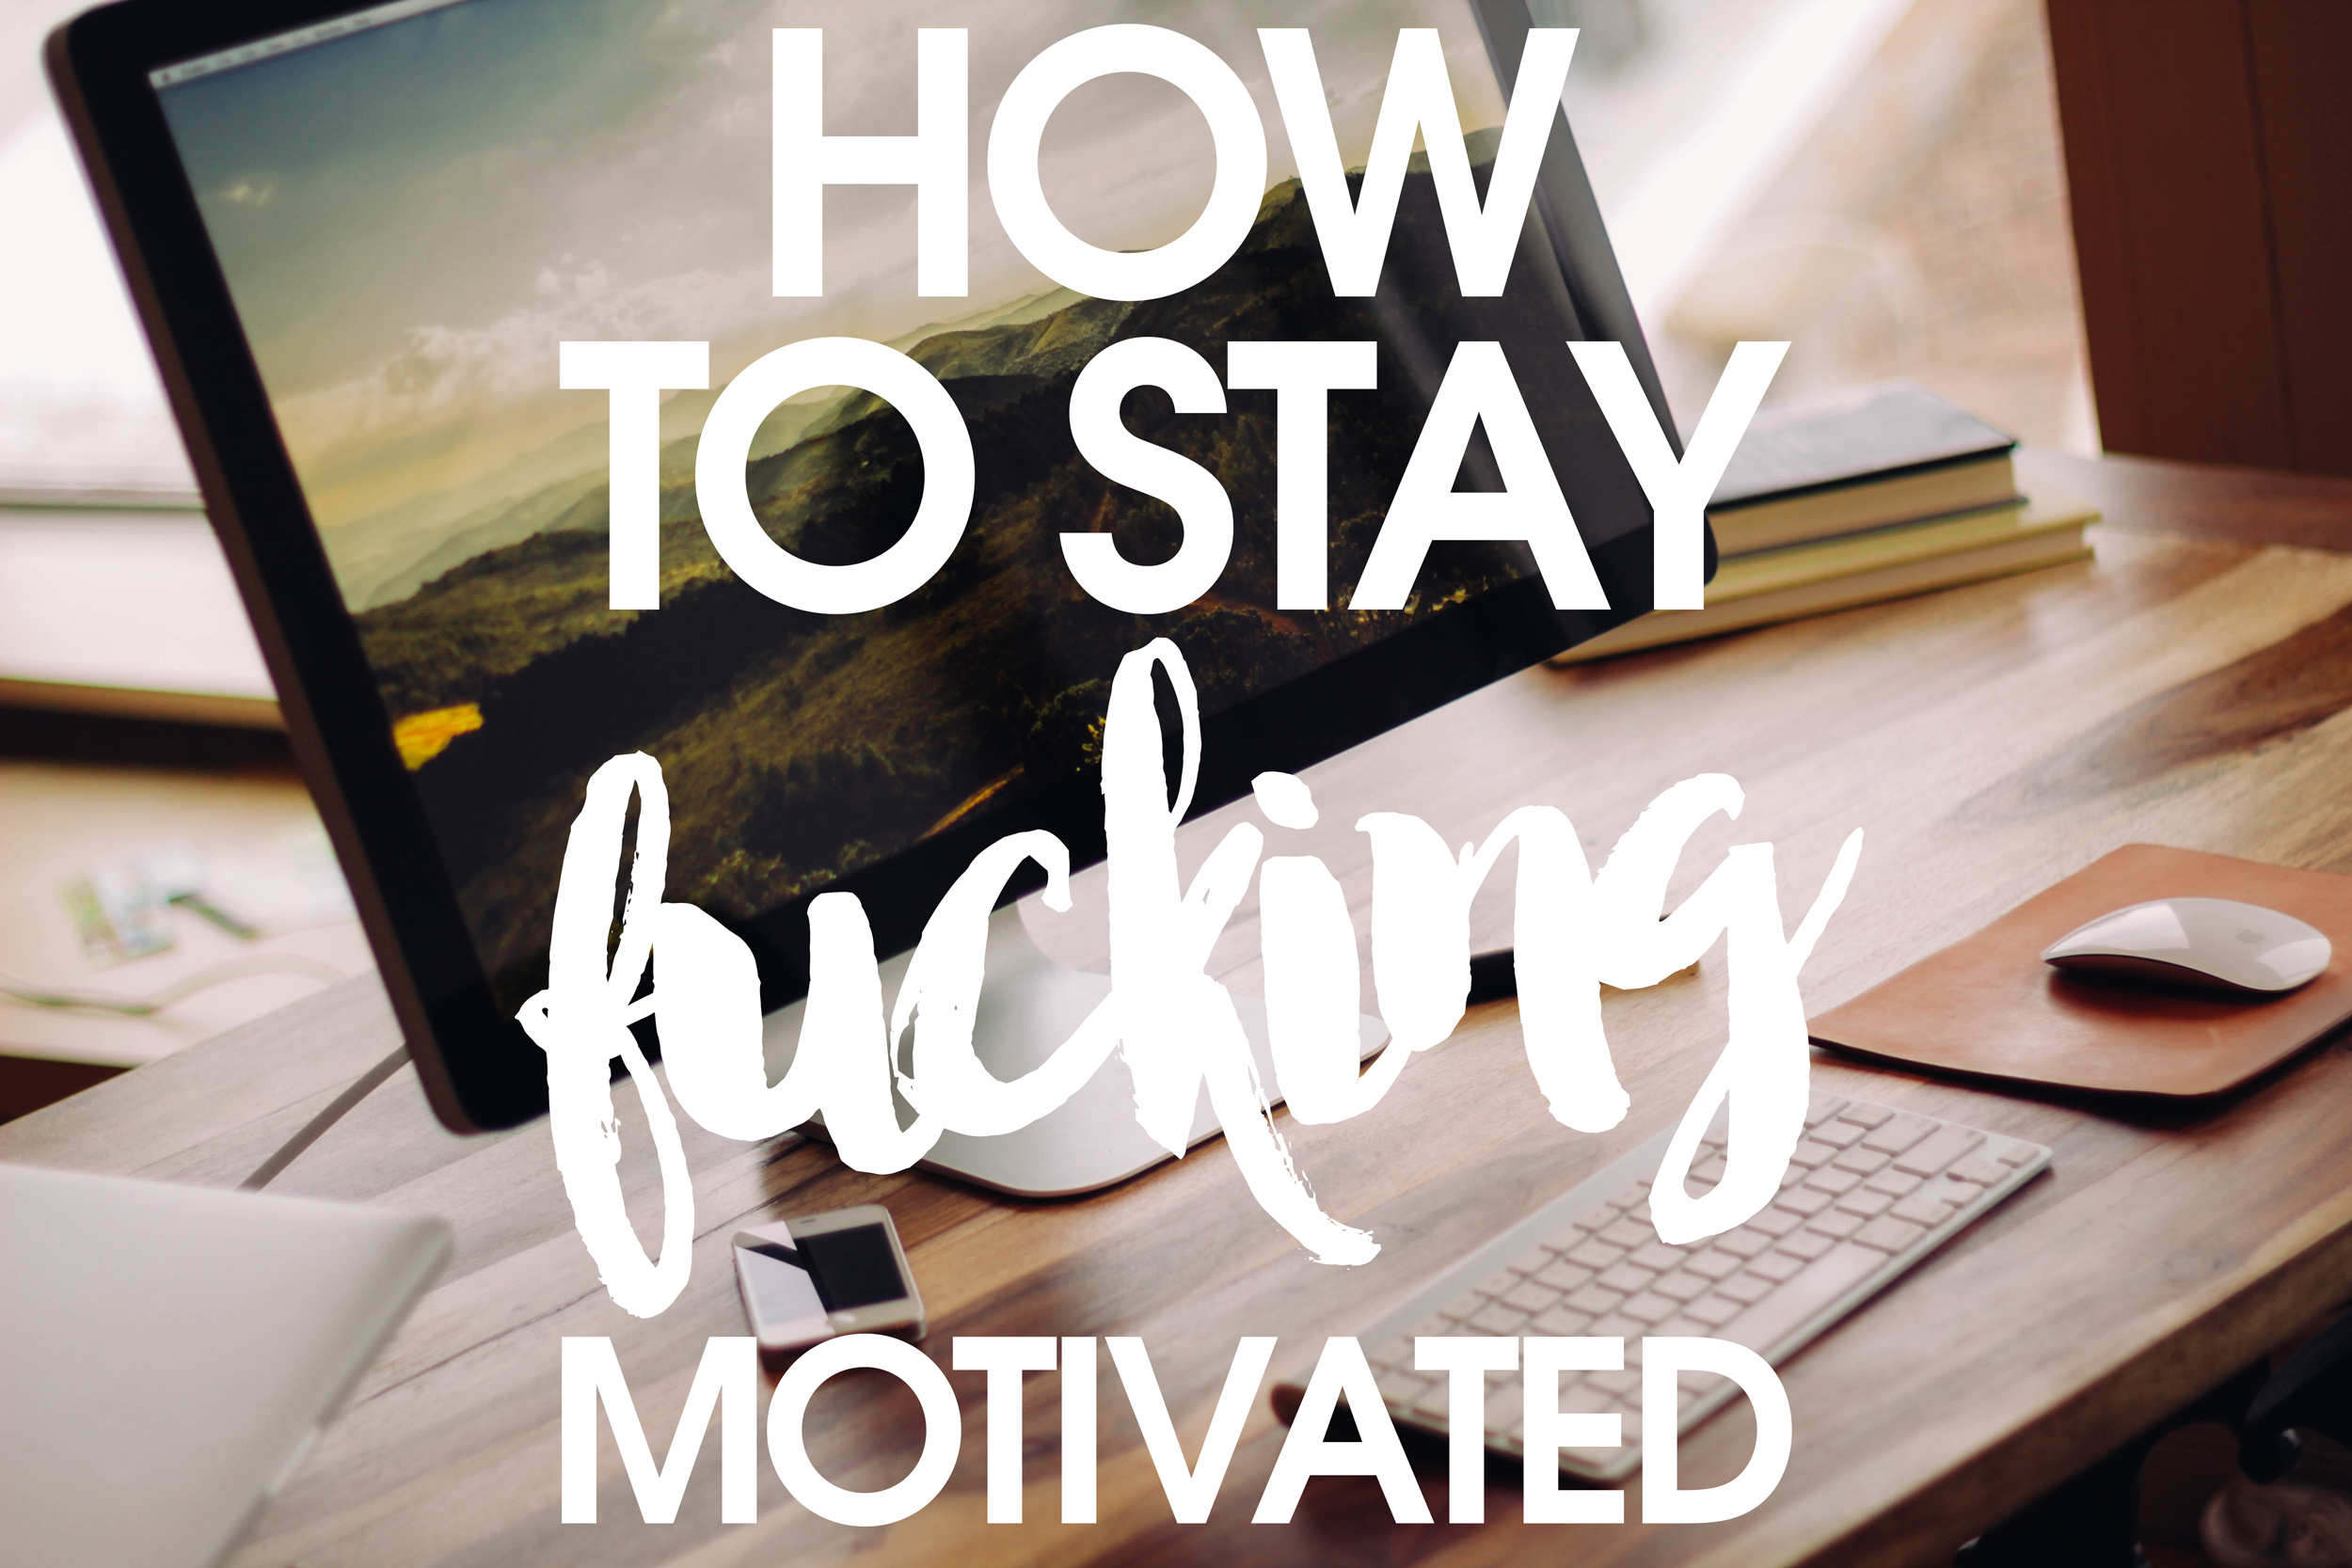 how_to_stay_fucking_motivated.jpg